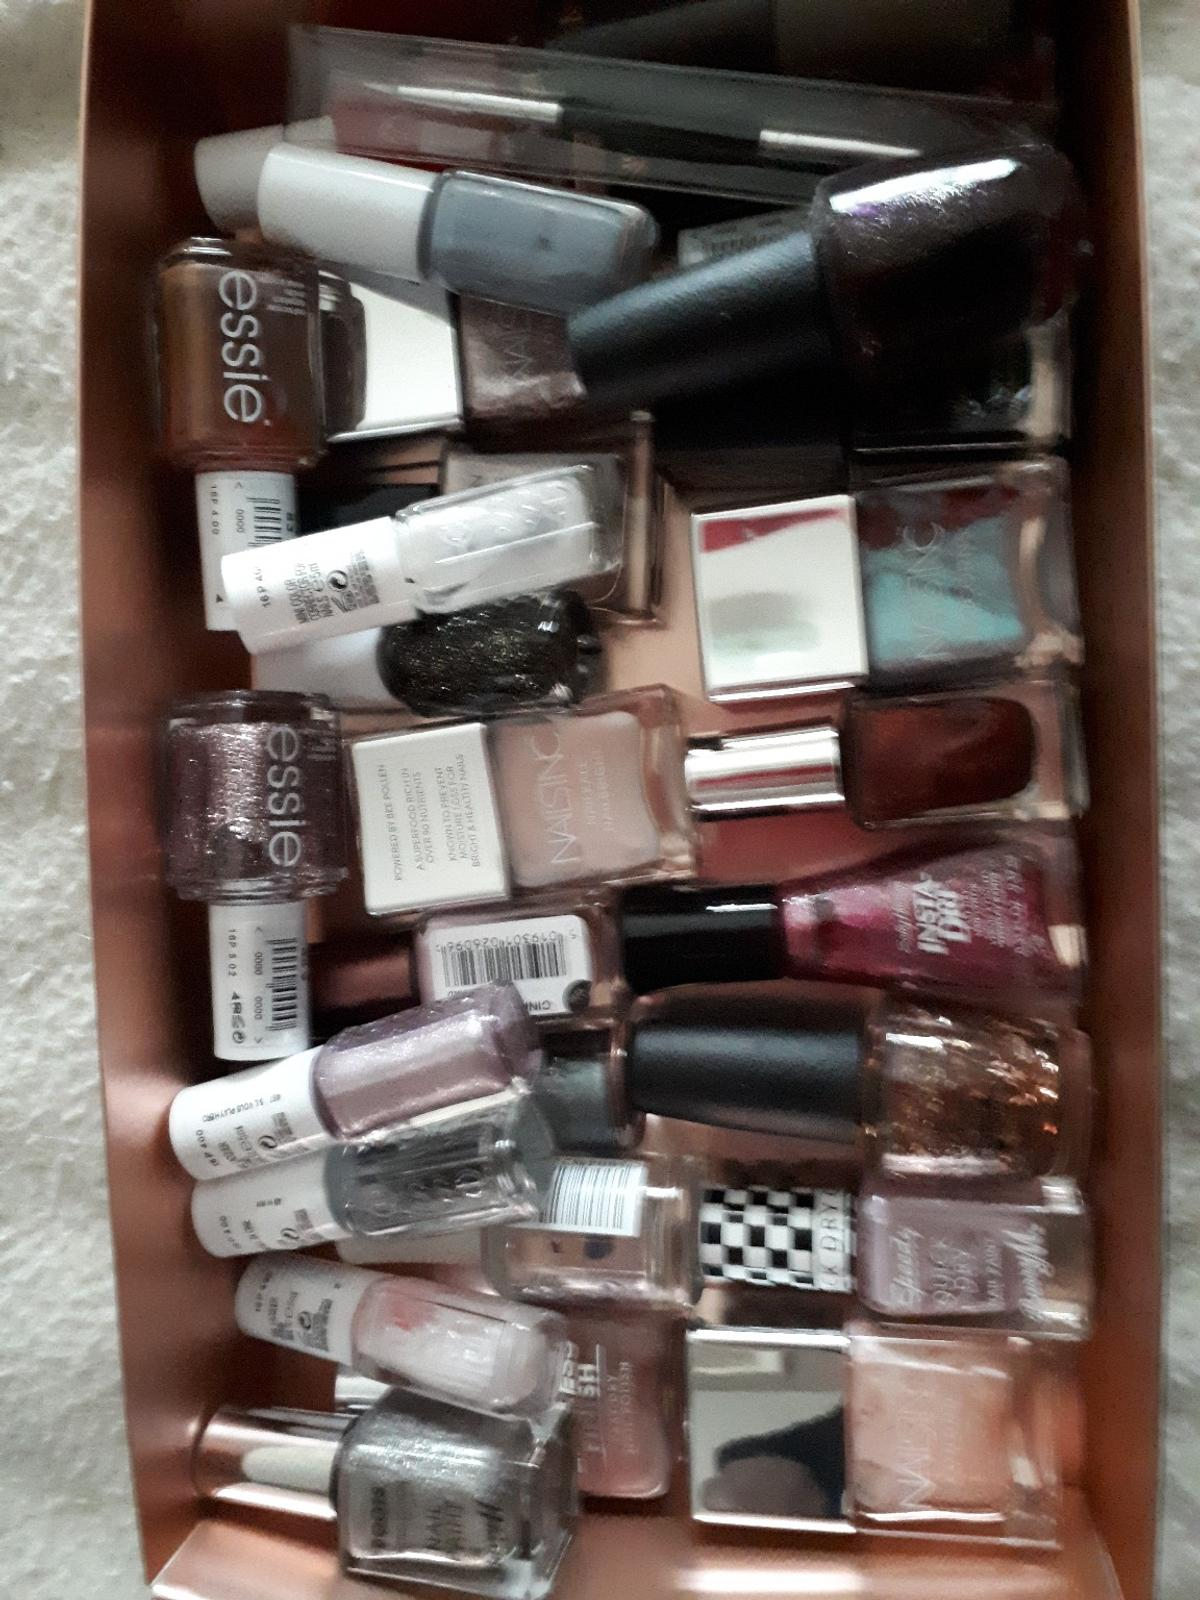 28 x nail polish including essie, opi, nails Inc collection from pelsall